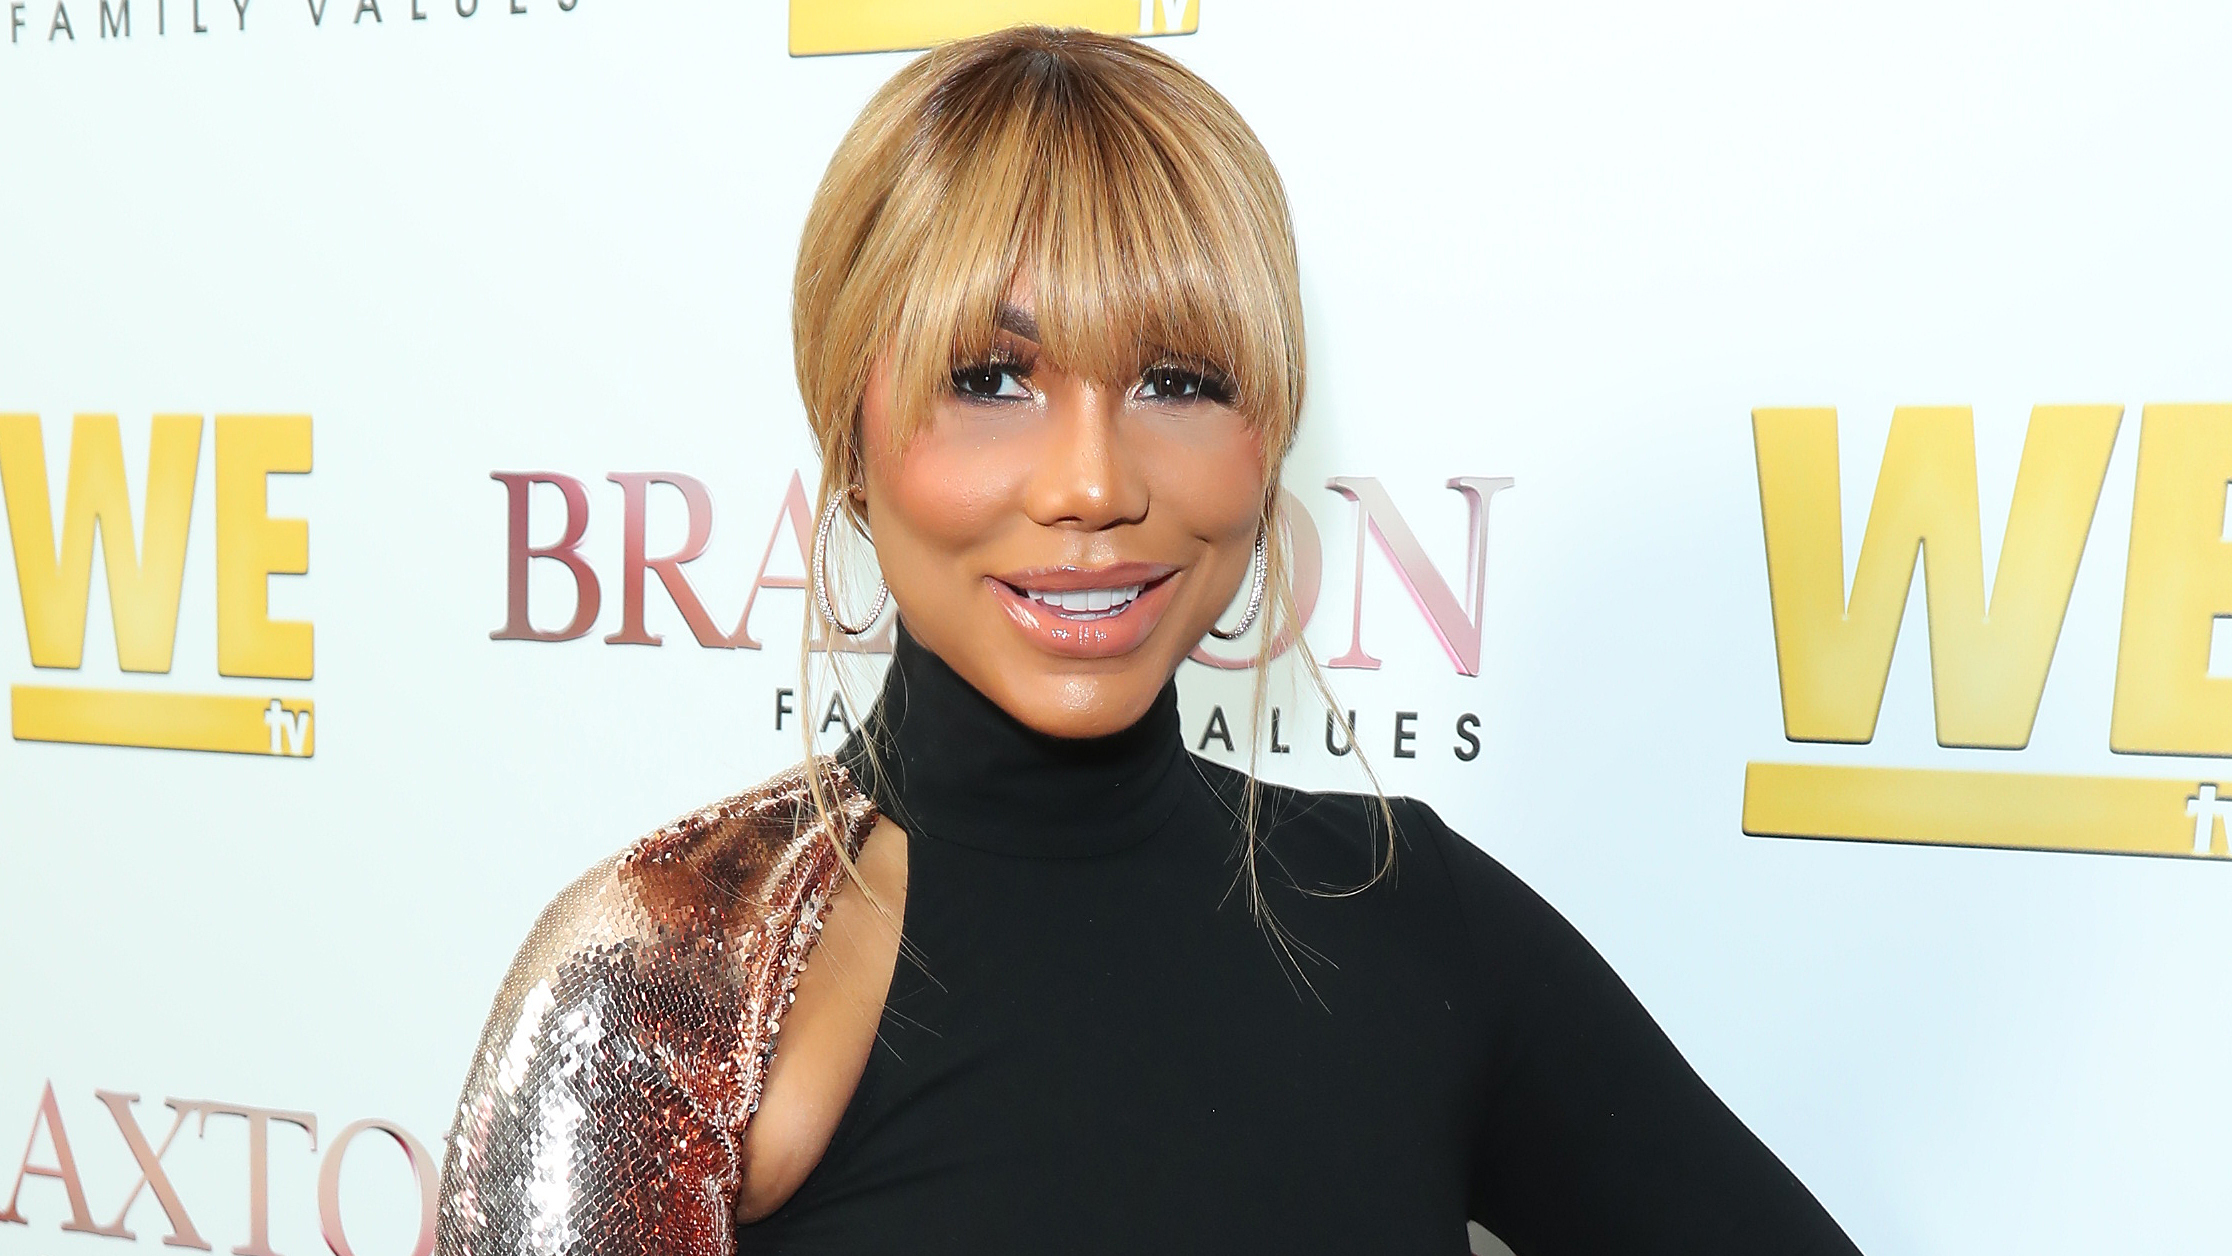 Tamar Braxton and WeTV part ways following singer's cutting revelations about network - Fox News